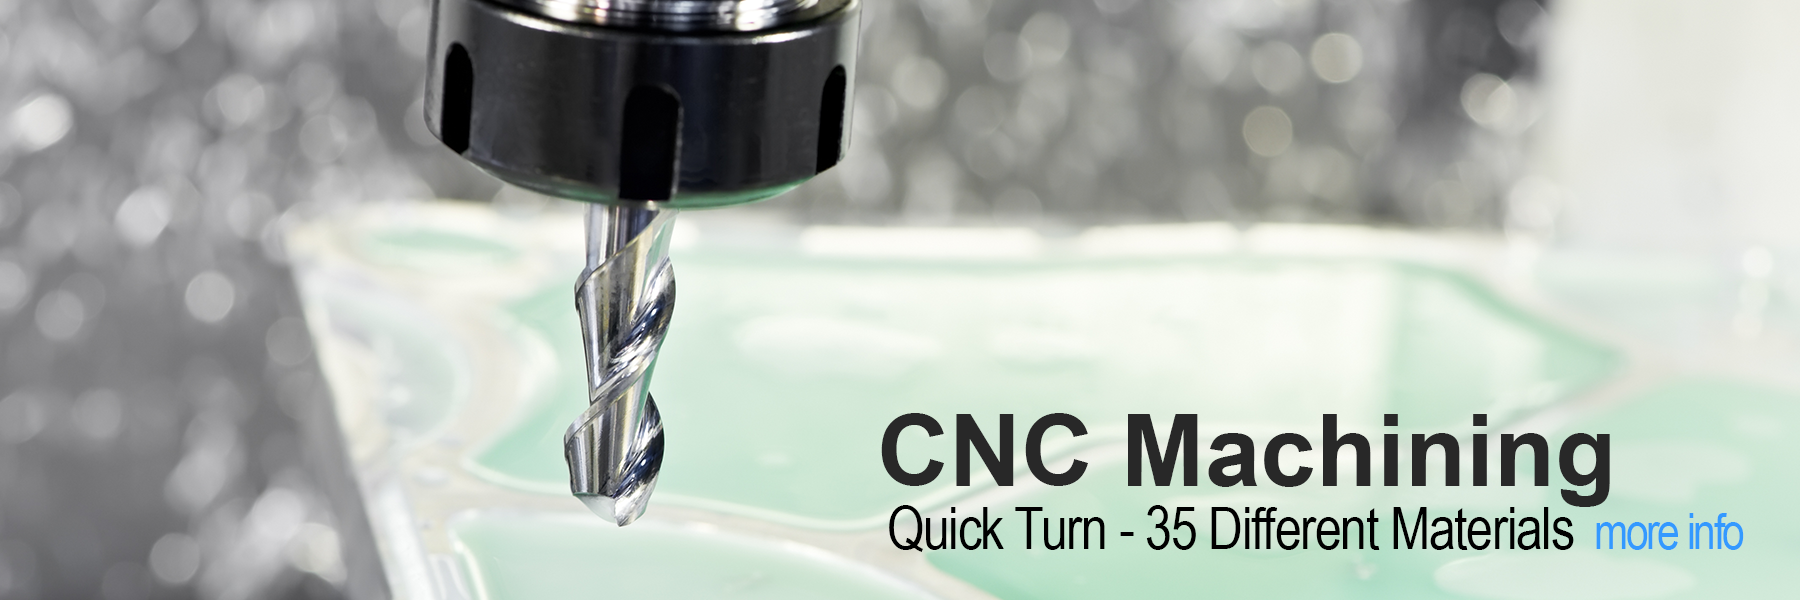 CNC Machining - Quick Turn - Large Selection of Materials